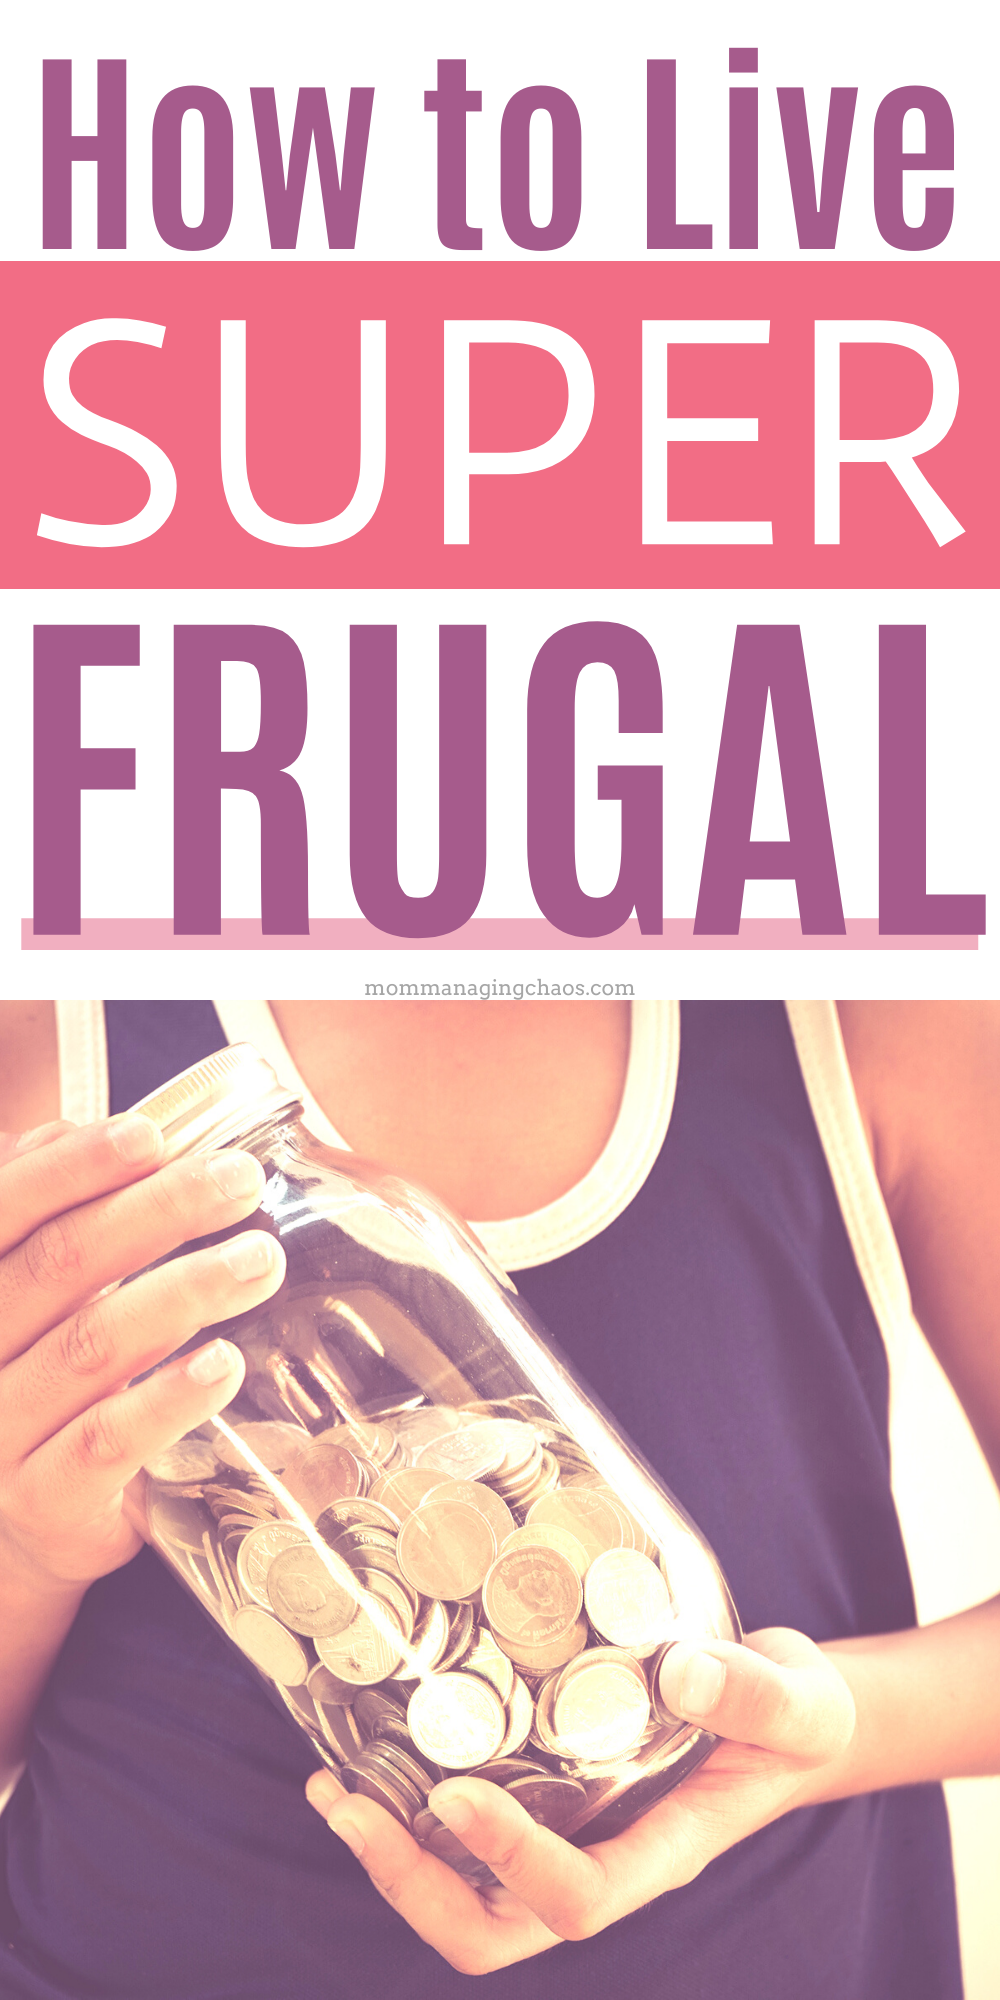 Are you looking to save money fast? Check out these simple tips to save money fast living super frugal.   Save Money Tricks | Frugal Living | Frugal Life | Frugal Budget | Thrifty Ideas | Saving Money Tips | Saving Money Fast  #mommanagingchaos #savemoney #money #moneytips #budget #frugal